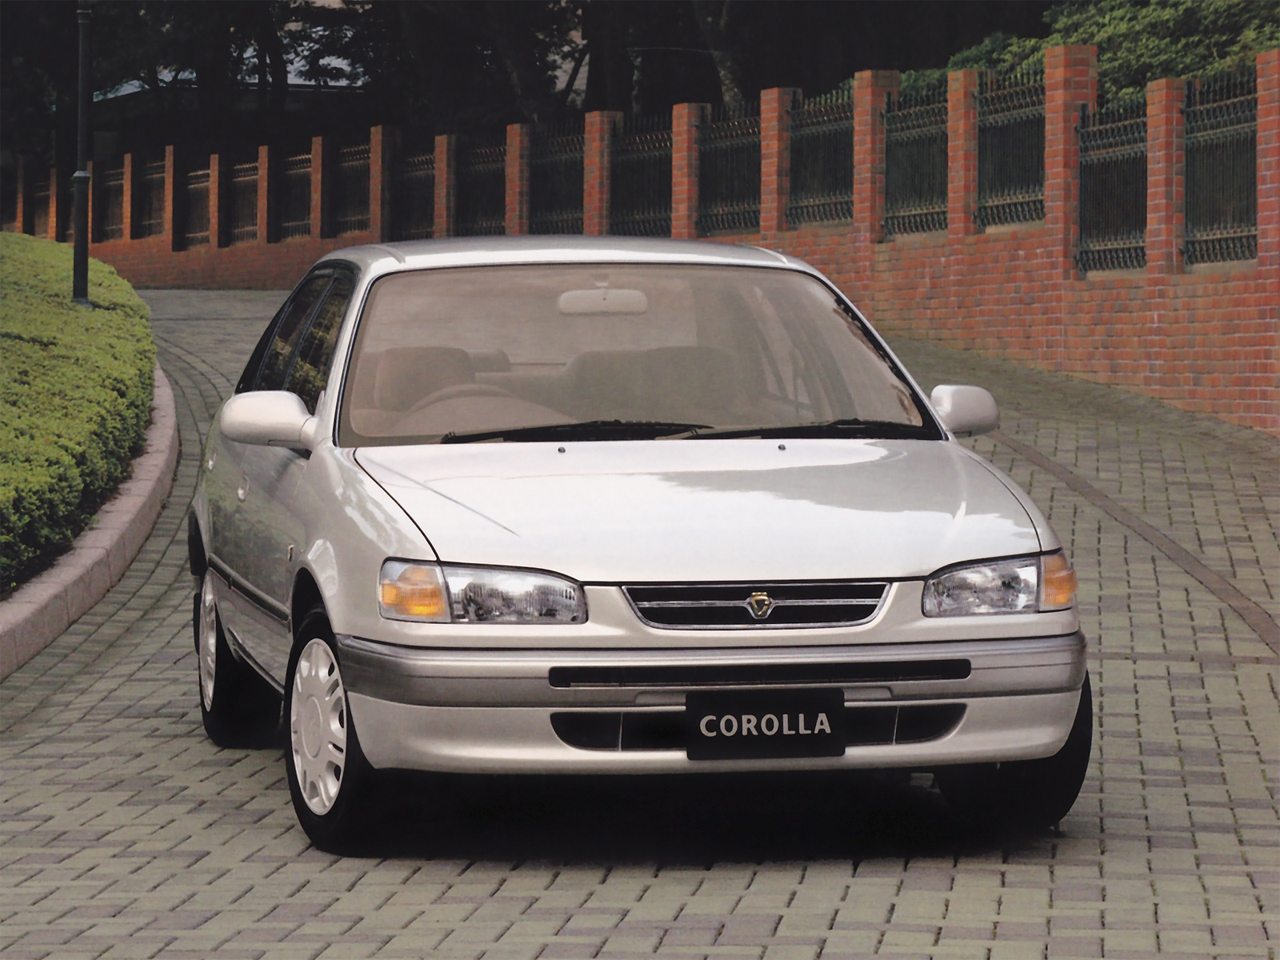 Toyota Corolla 1.5 1996 photo - 3